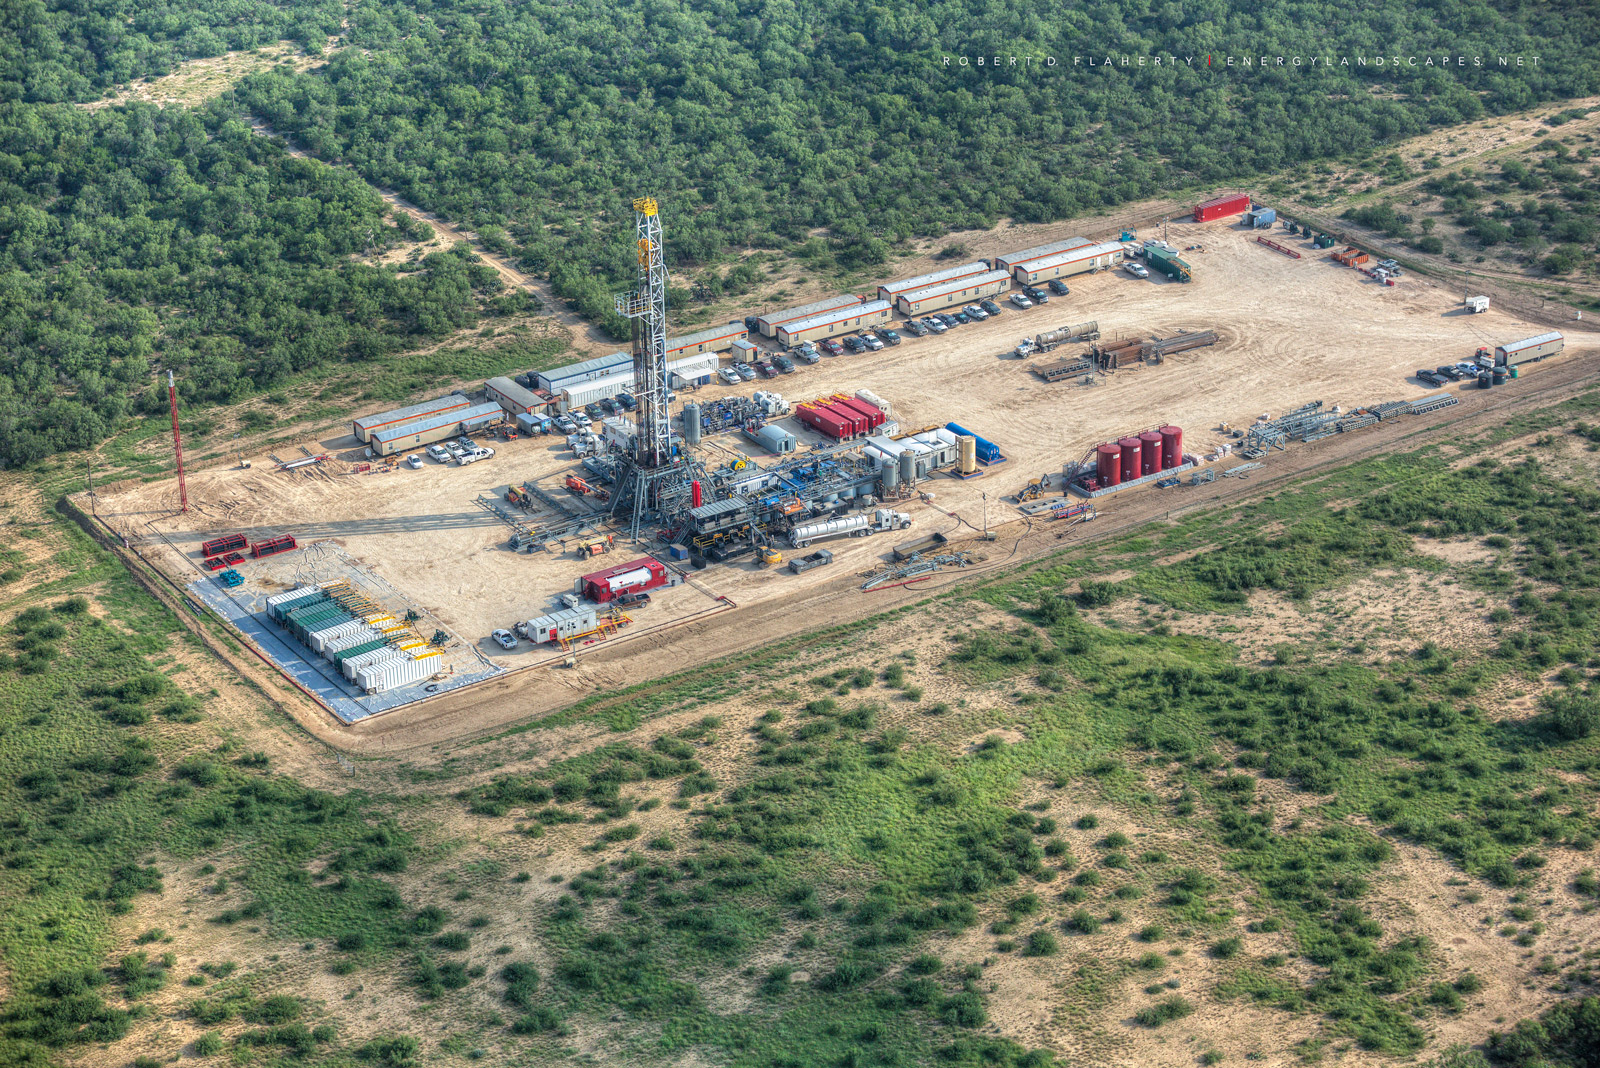 aerial photography, aerial oil & gas photography, aerial oilfield art, H&P Drilling, pad drilling, directional well, directional drilling, Eagle Ford, Texas, Kenyon Gyro, drilling rig , photo